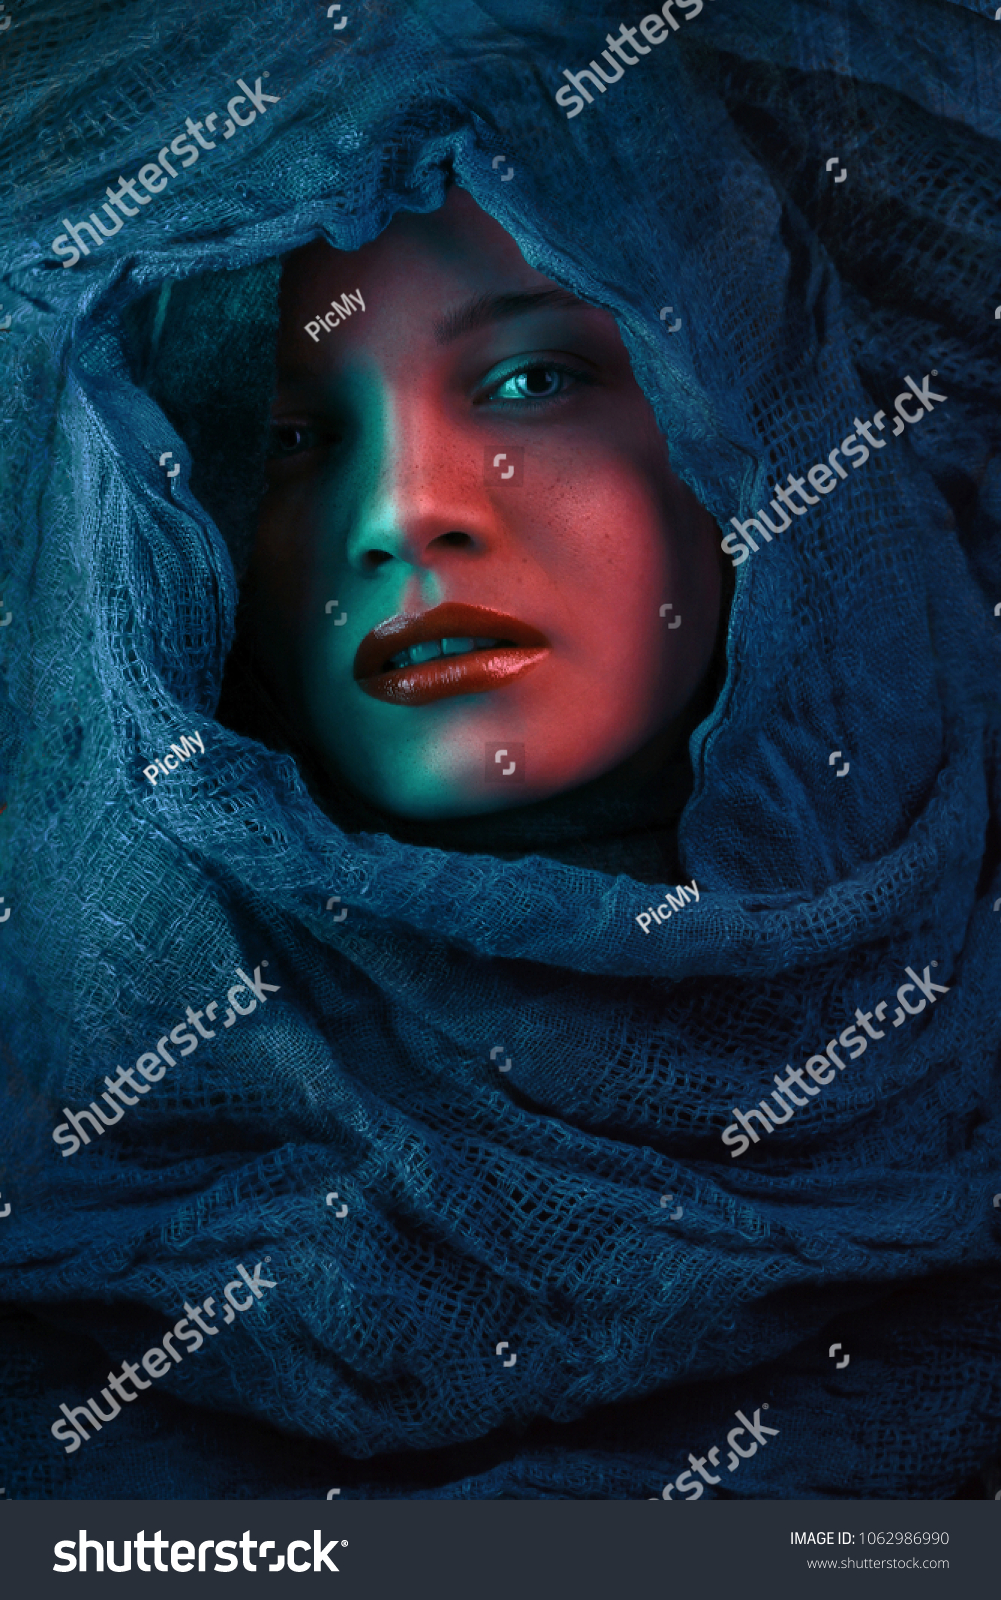 e2a3b8e383d Woman Covers Her Face Blue Cloth Stock Photo (Edit Now) 1062986990 ...